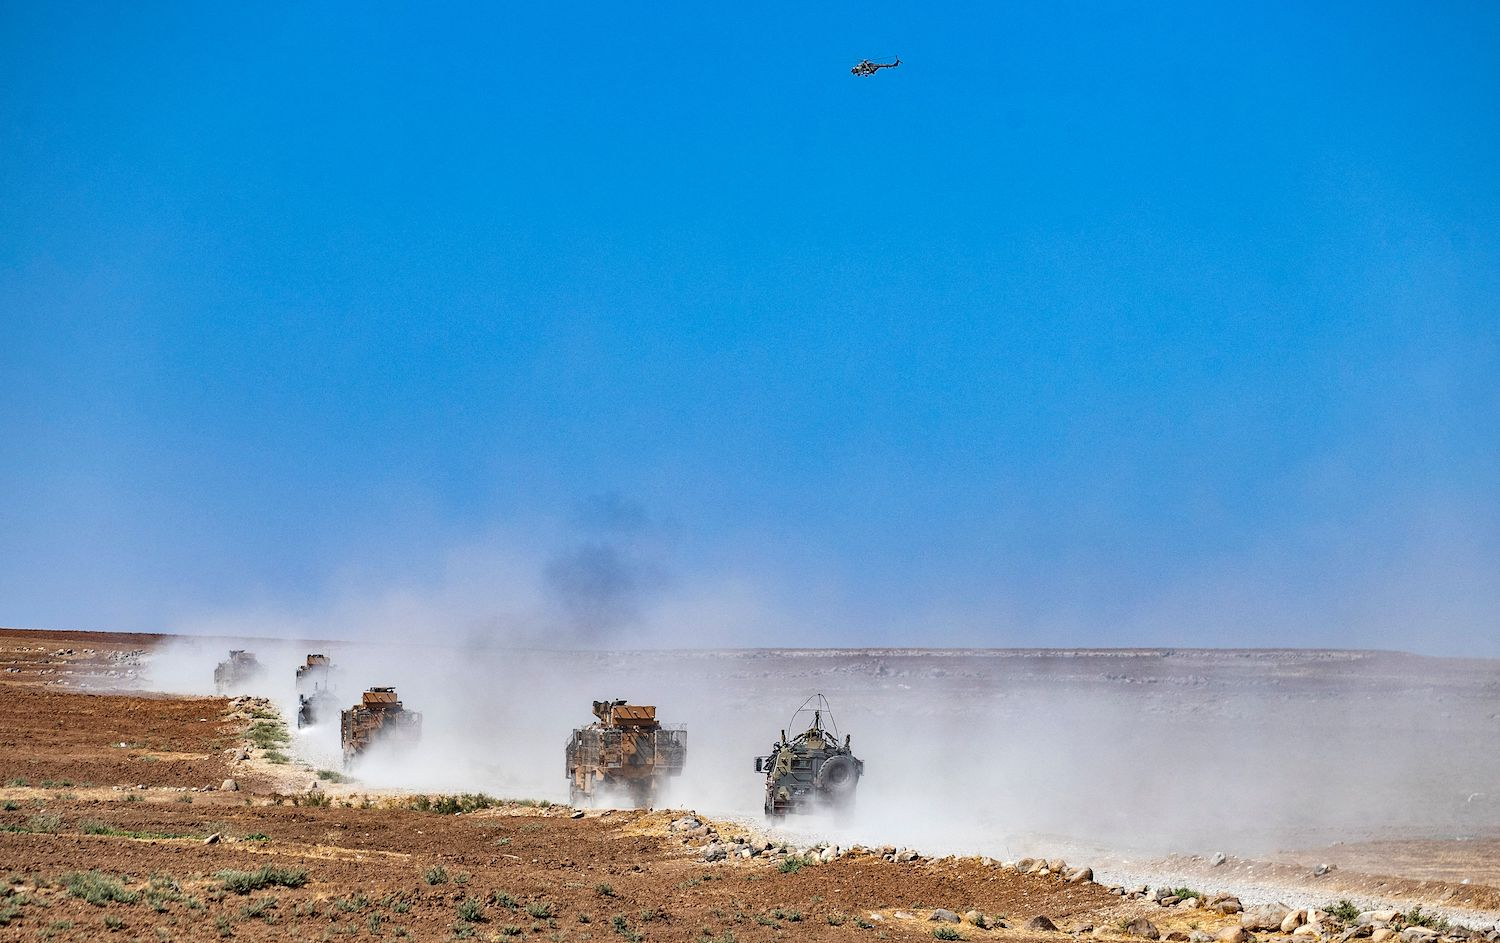 A Russian helicopter hovers as Turkish and Russian military vehicles patrol in Syria.